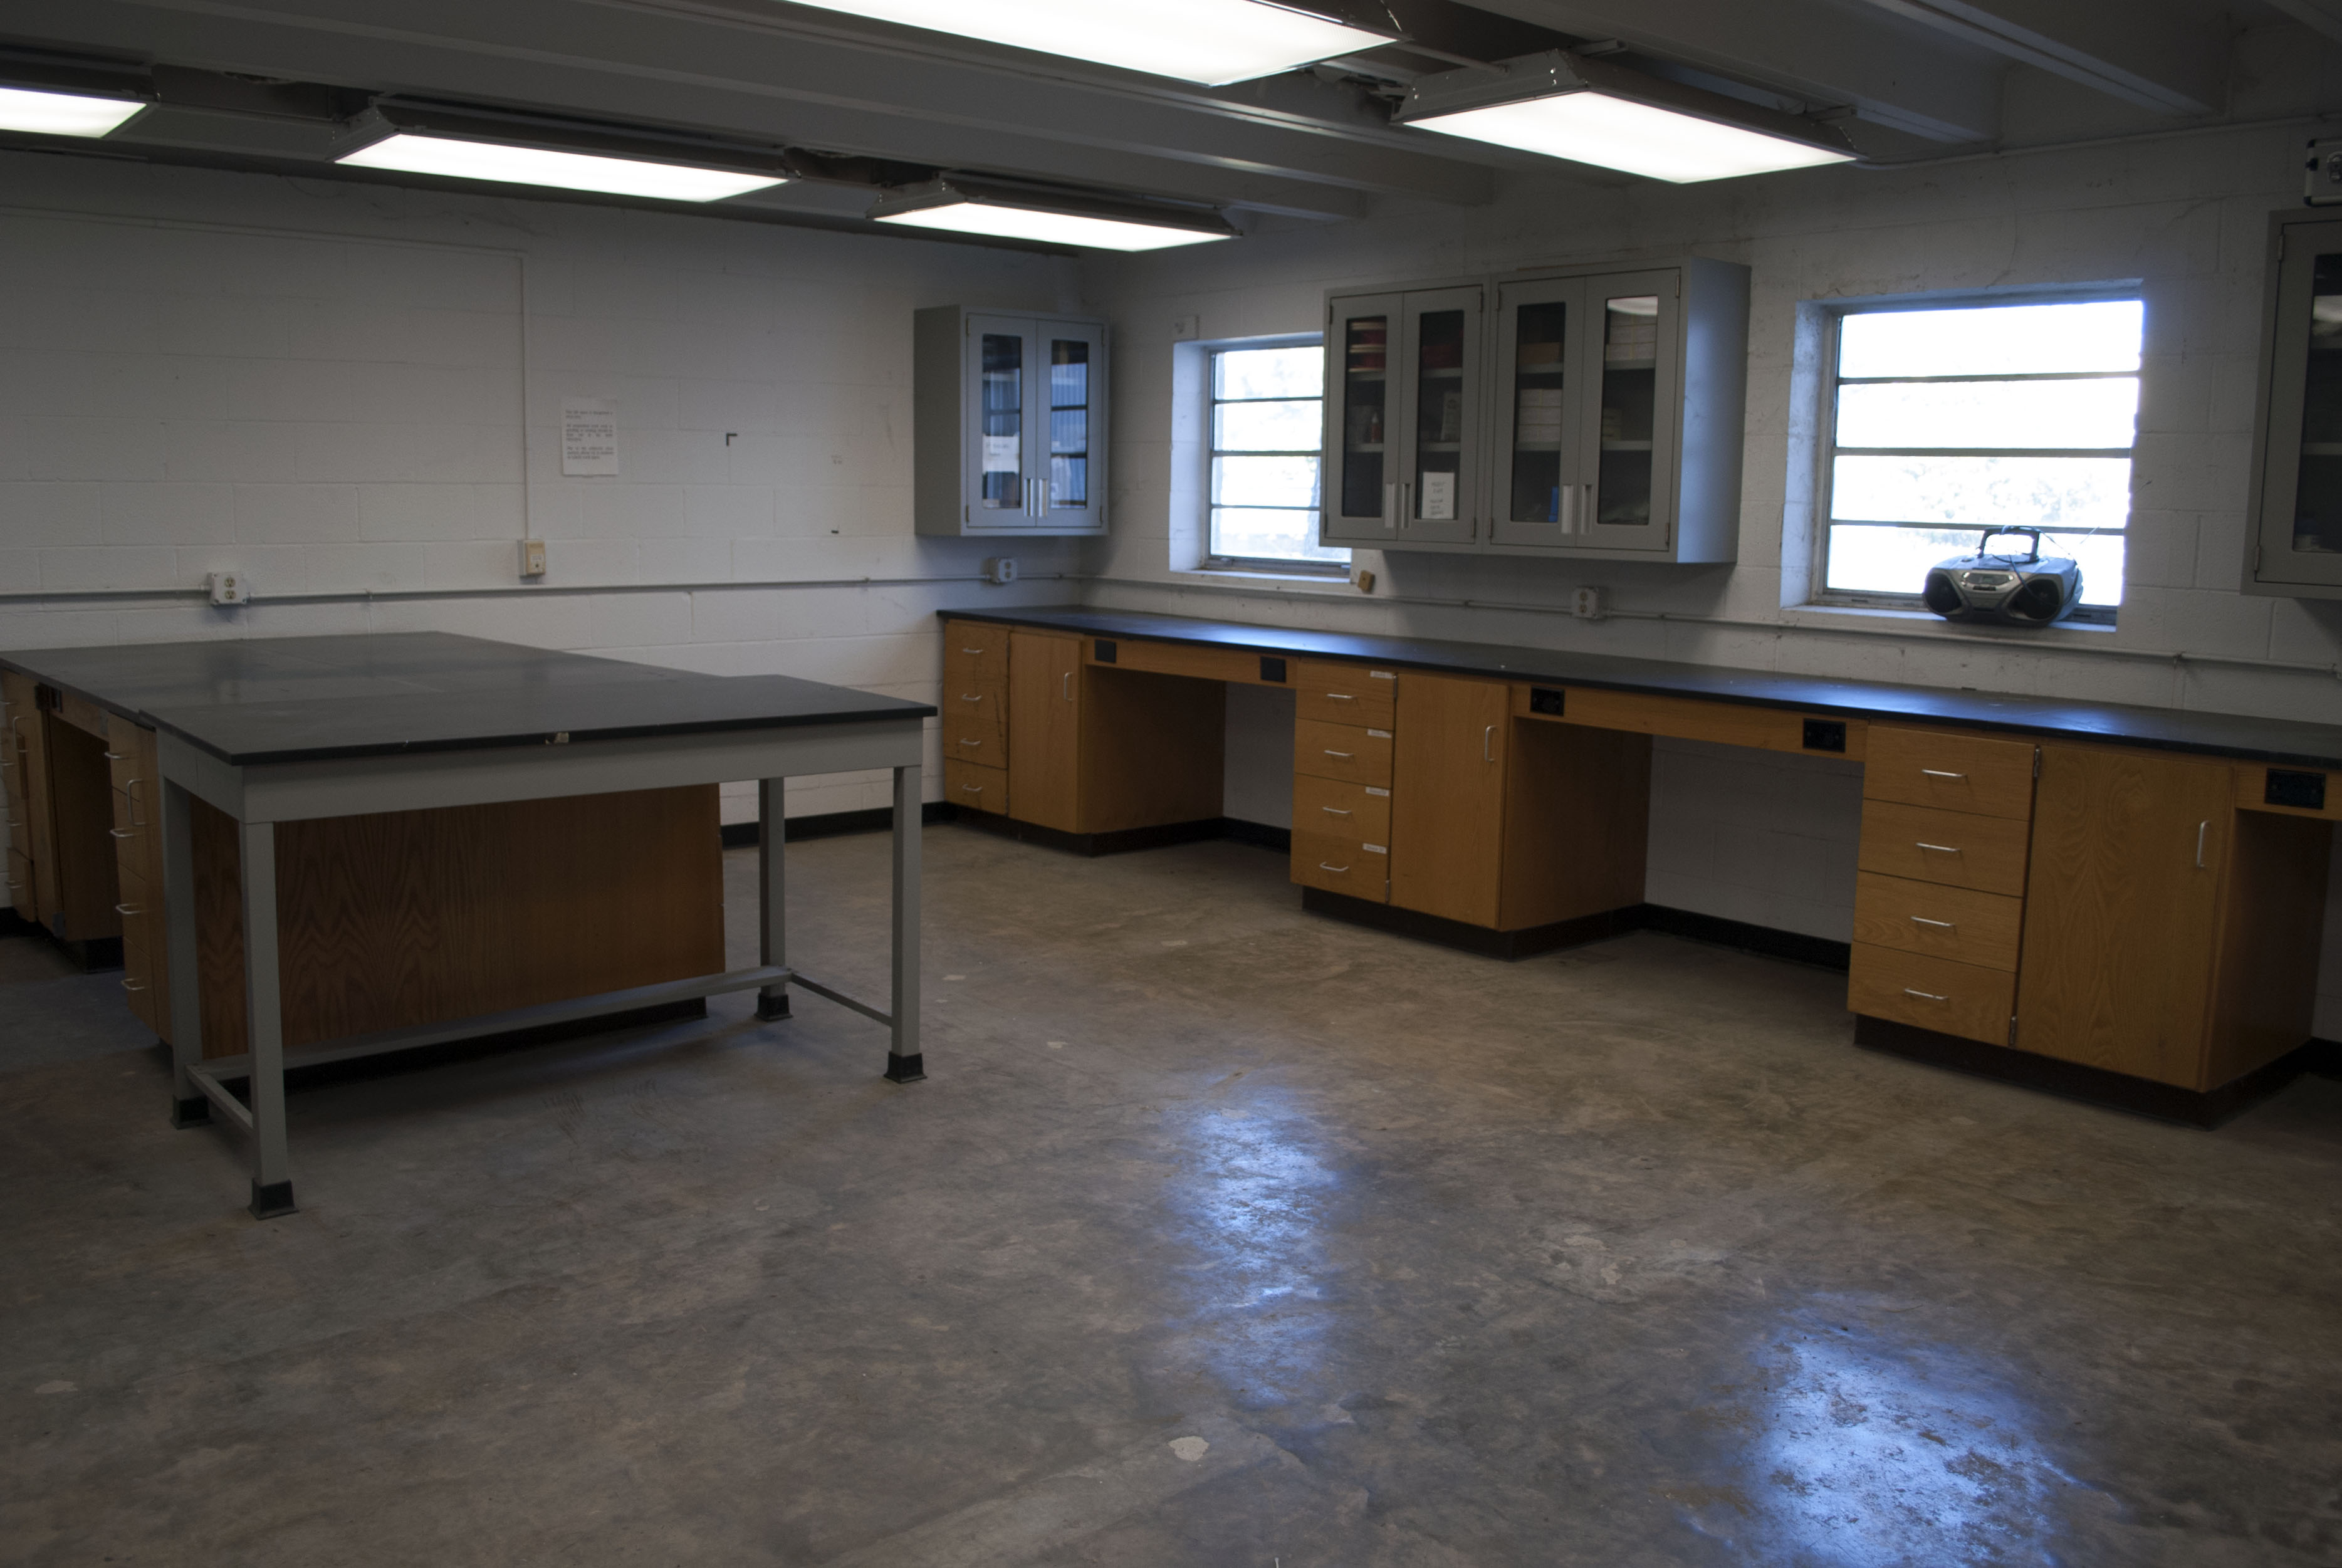 interior view of clean room